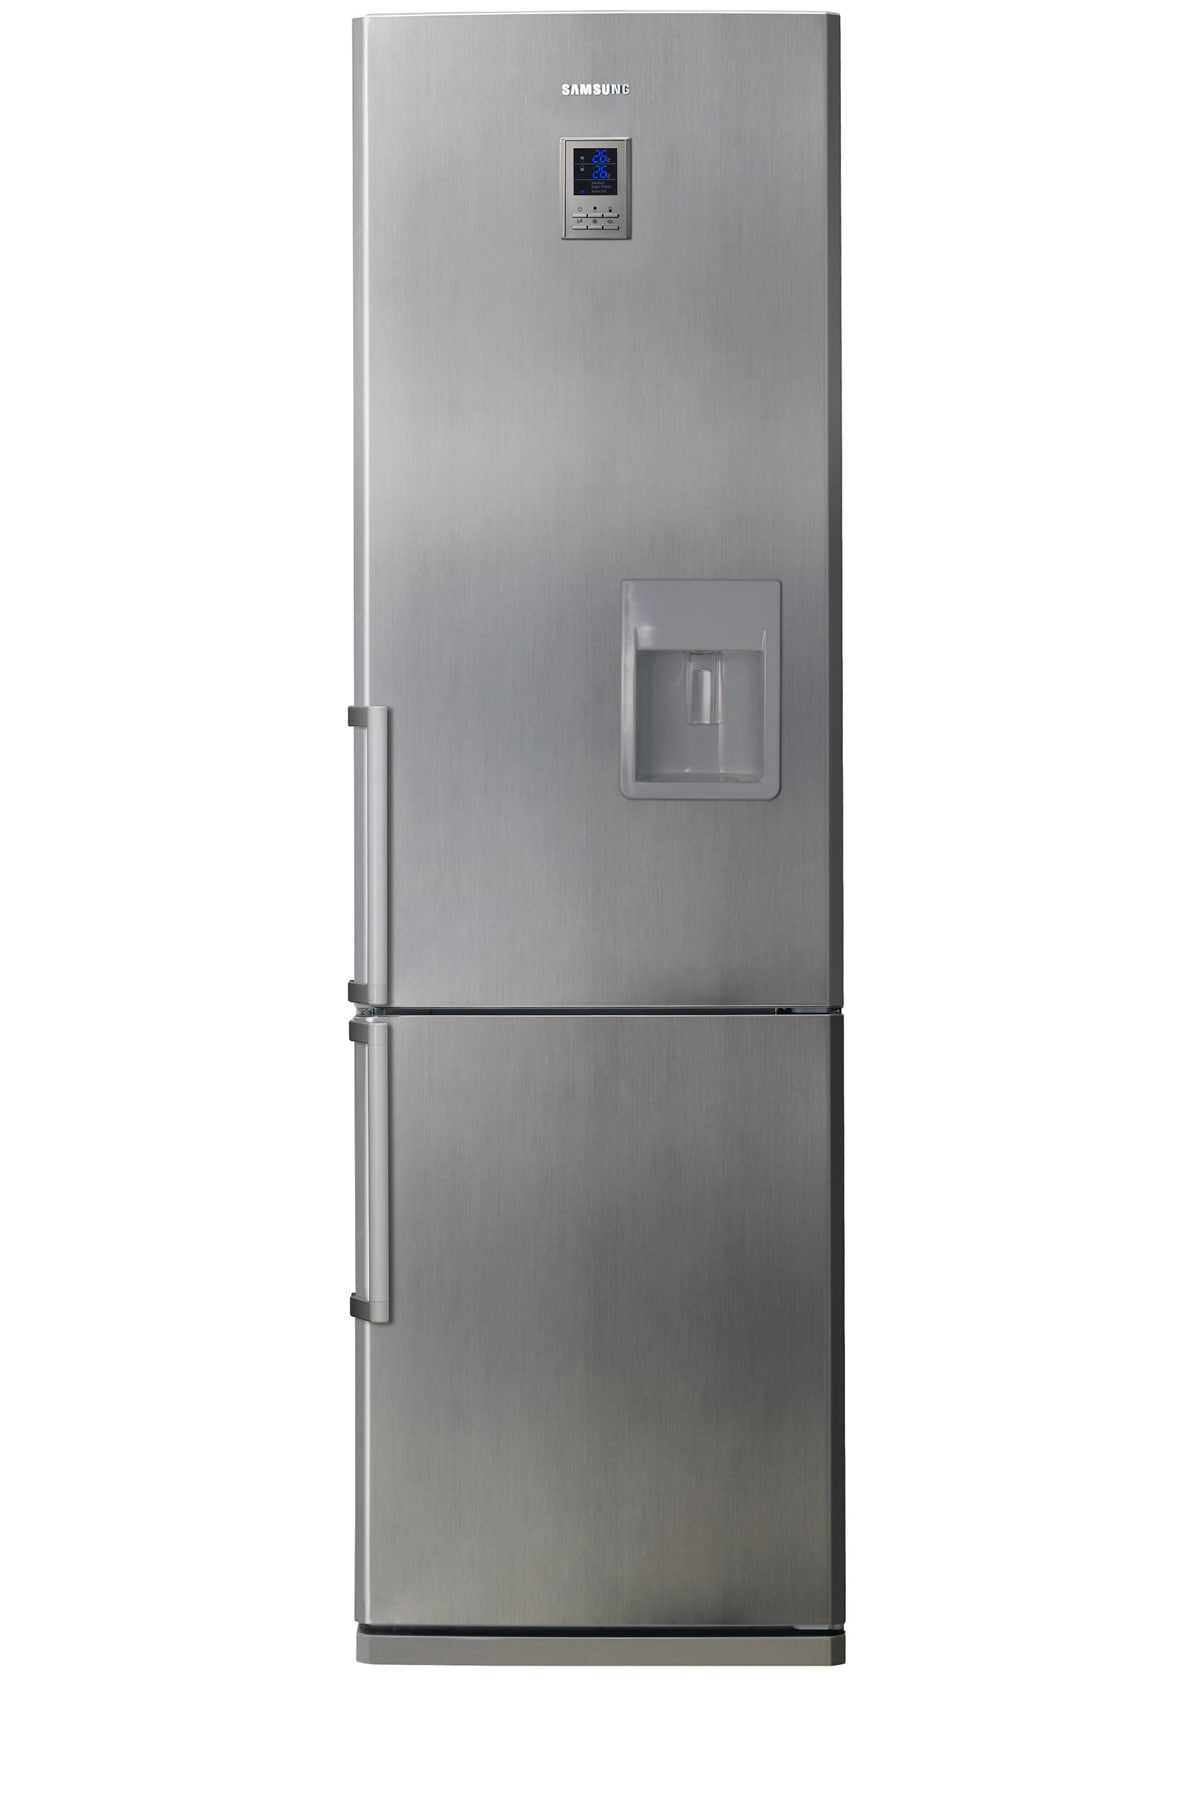 CORE BMF with Bar Handle, 318 L, Inox